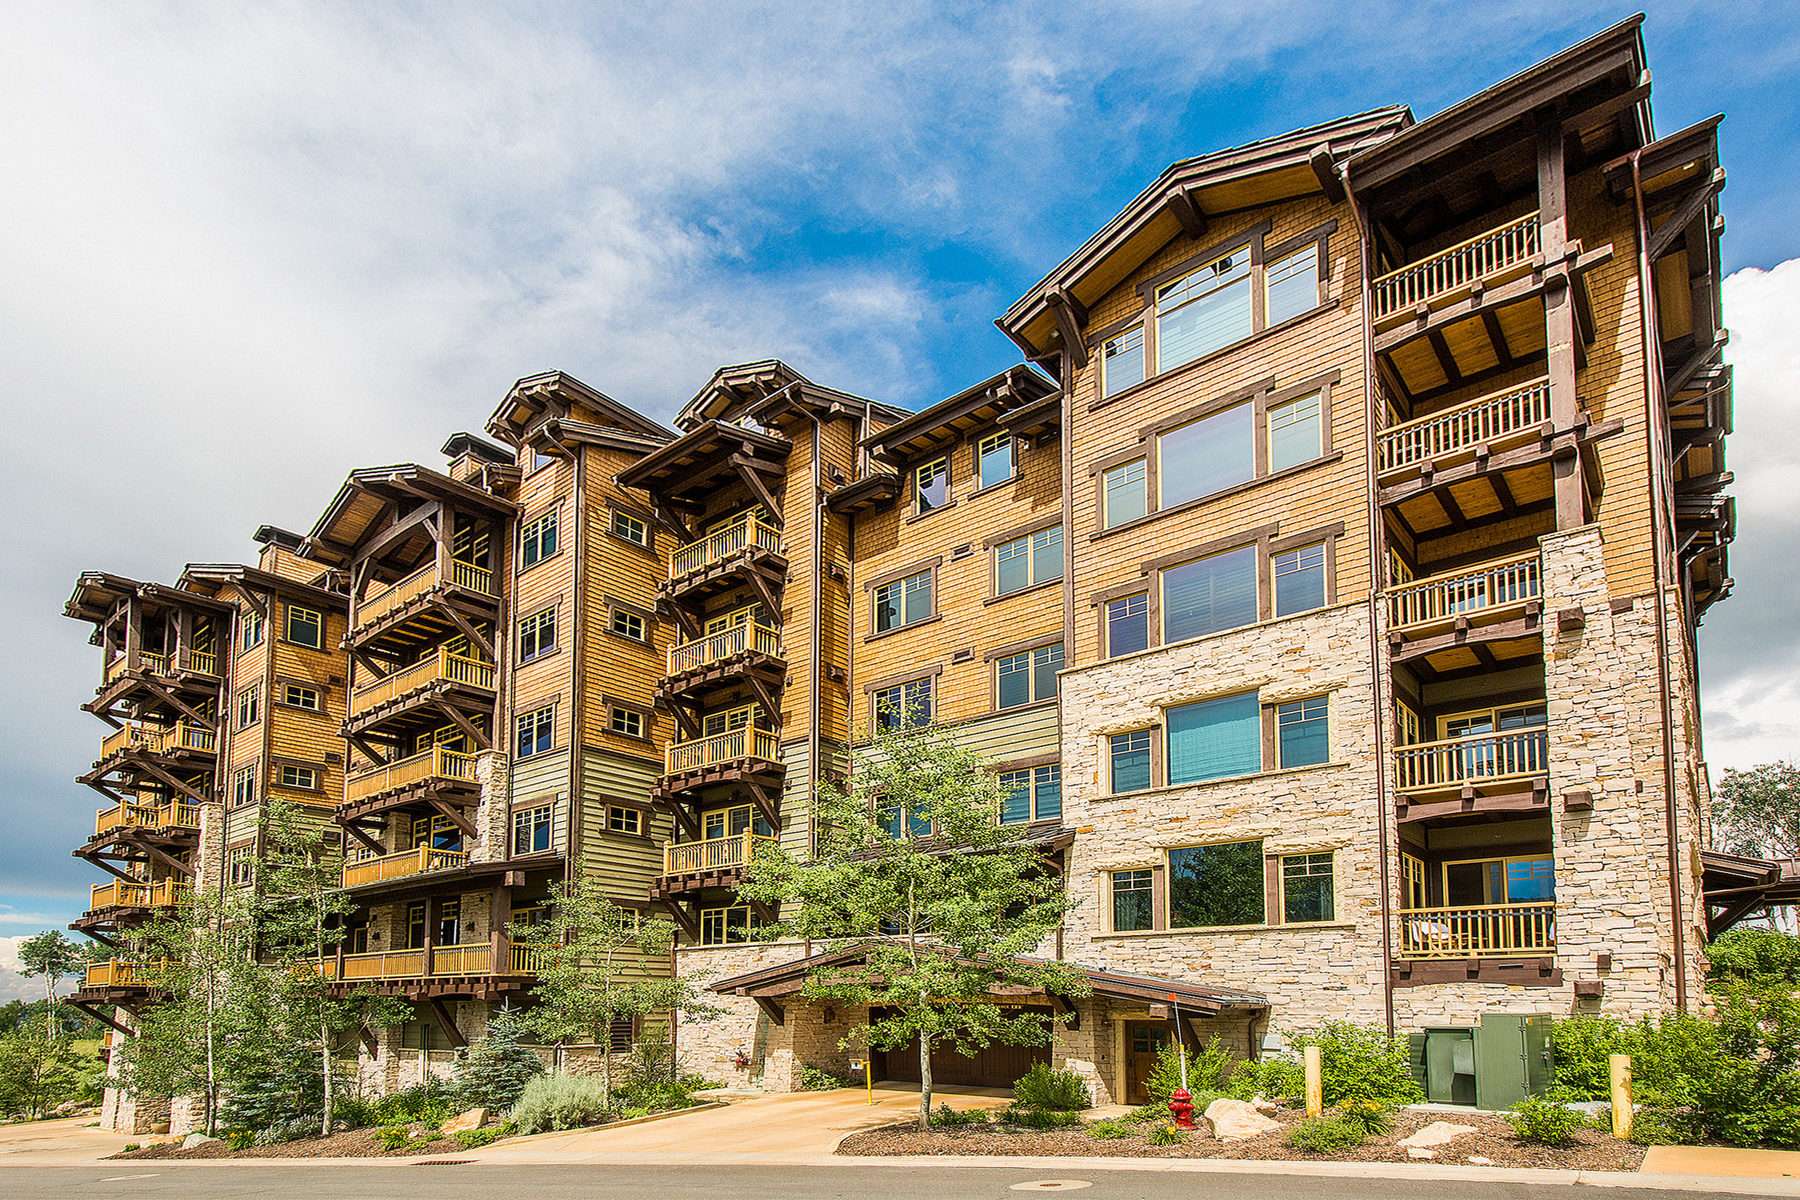 Condominium for Sale at Luxury Ski In Ski Out 8902 Empire Club Dr #407 Park City, Utah 84060 United States